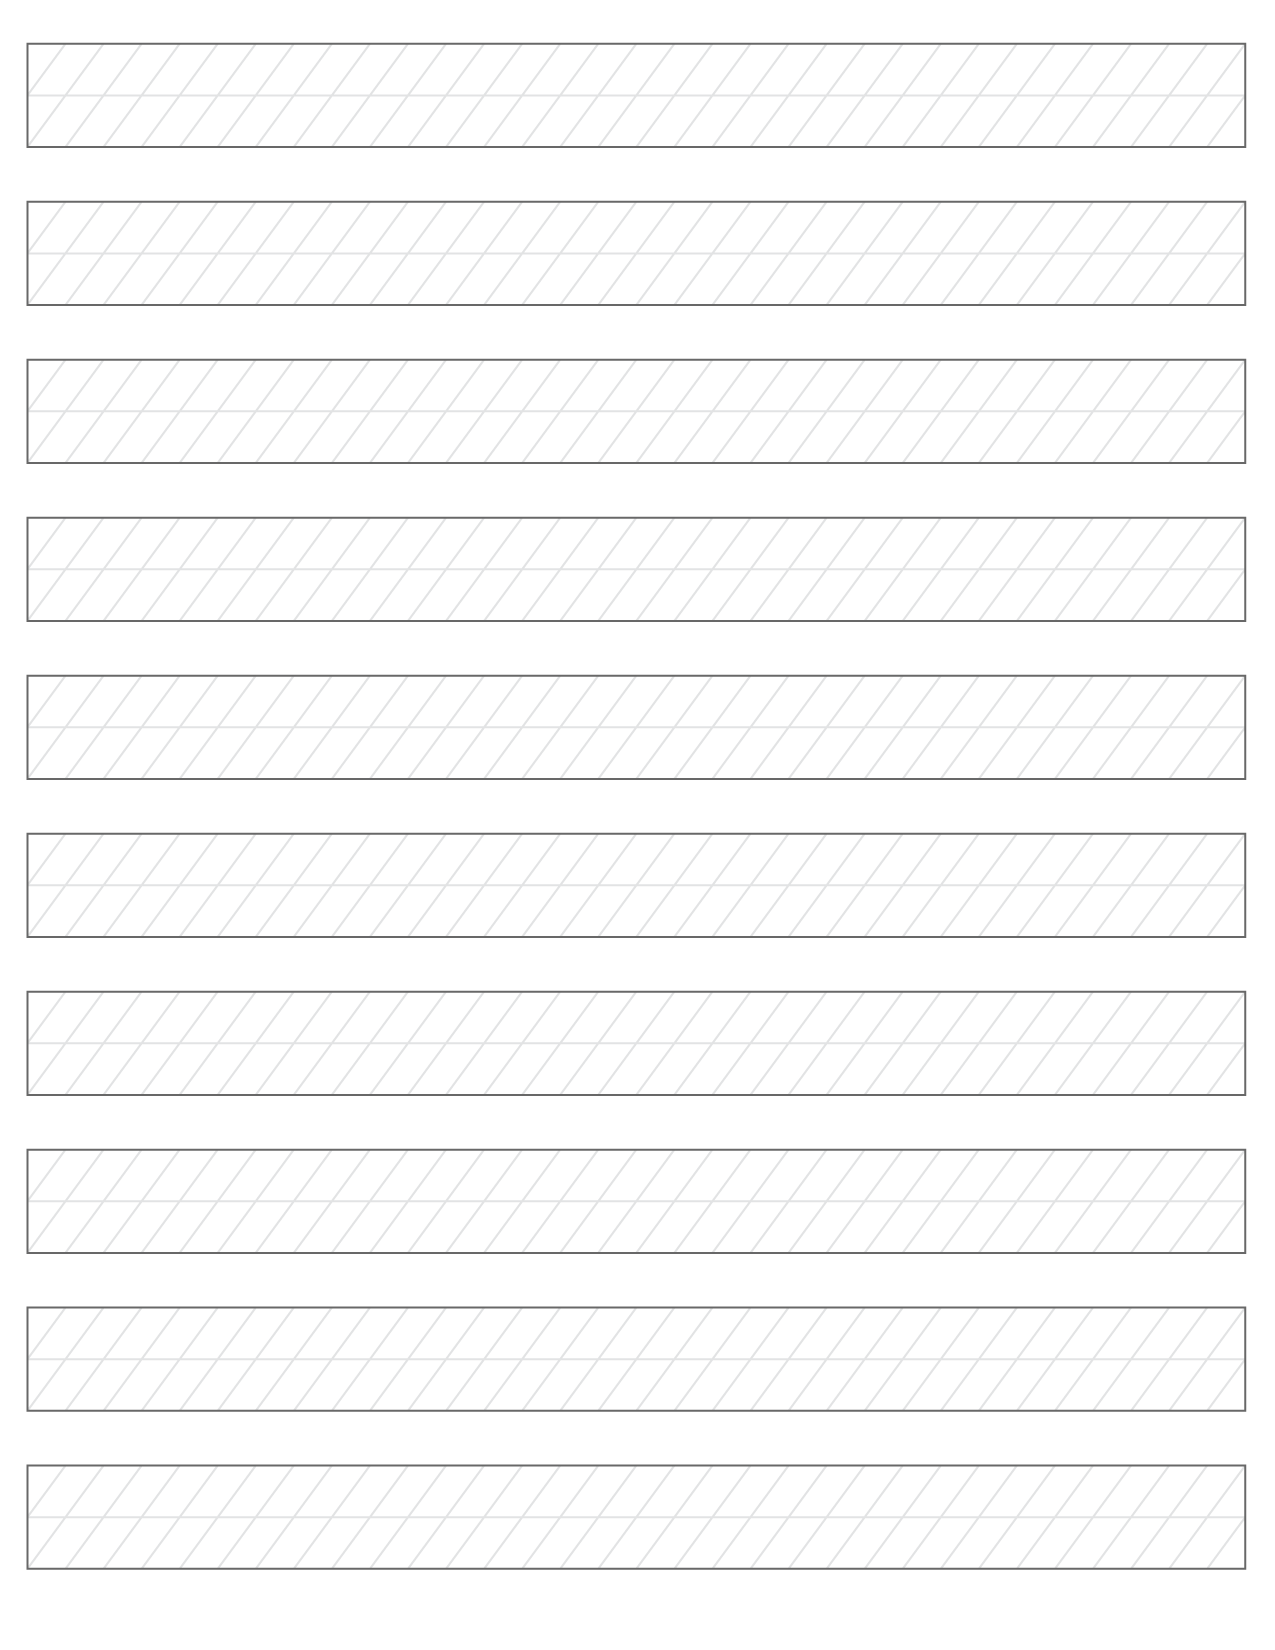 free blank calligraphy paper and lined